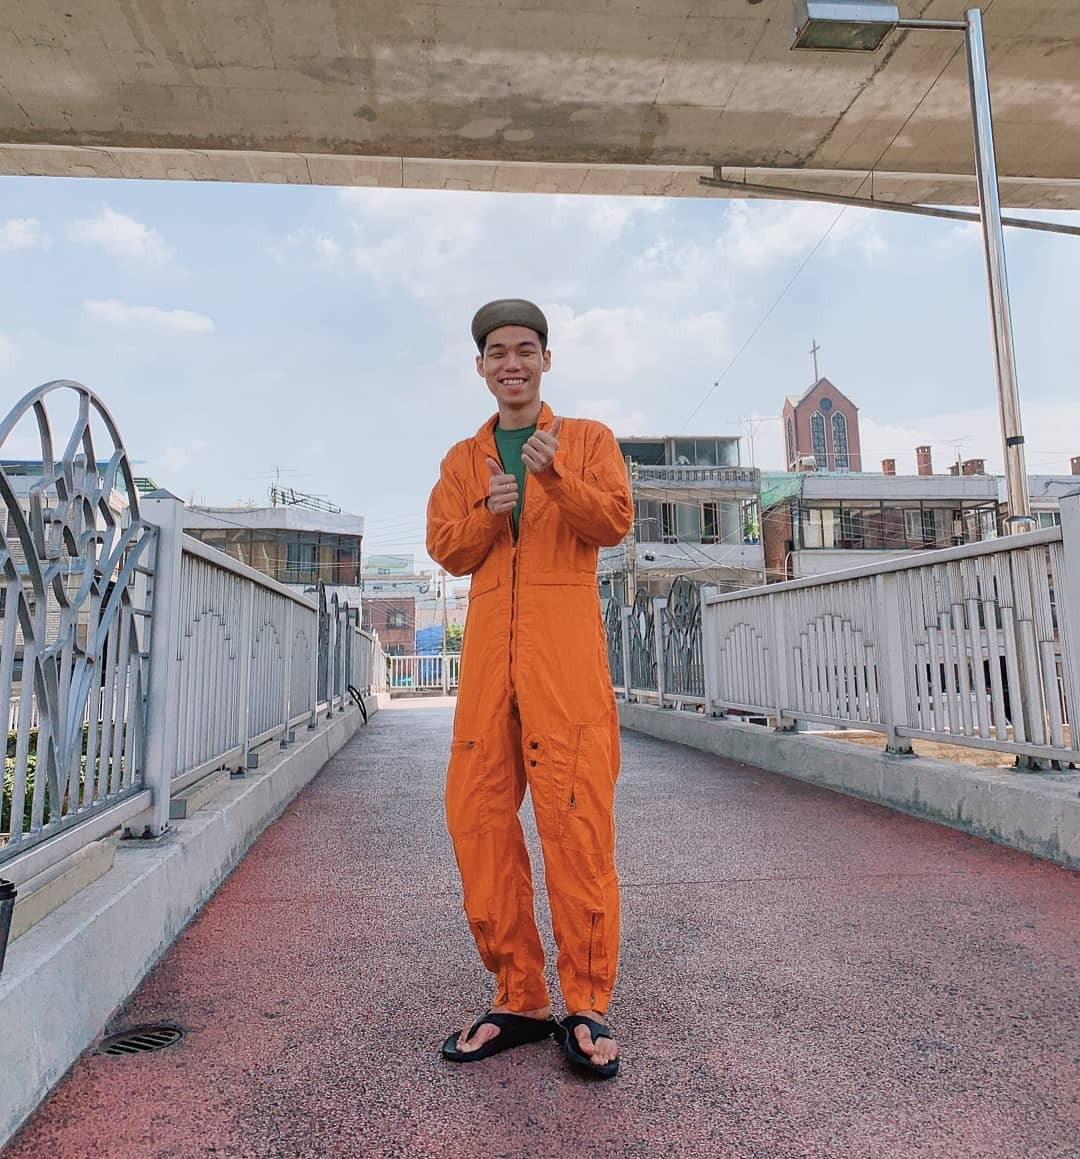 internet finds #overalls#coveralls#jumpsuit#workwear#work wear#cool#cool look#orange overalls#street style#friends